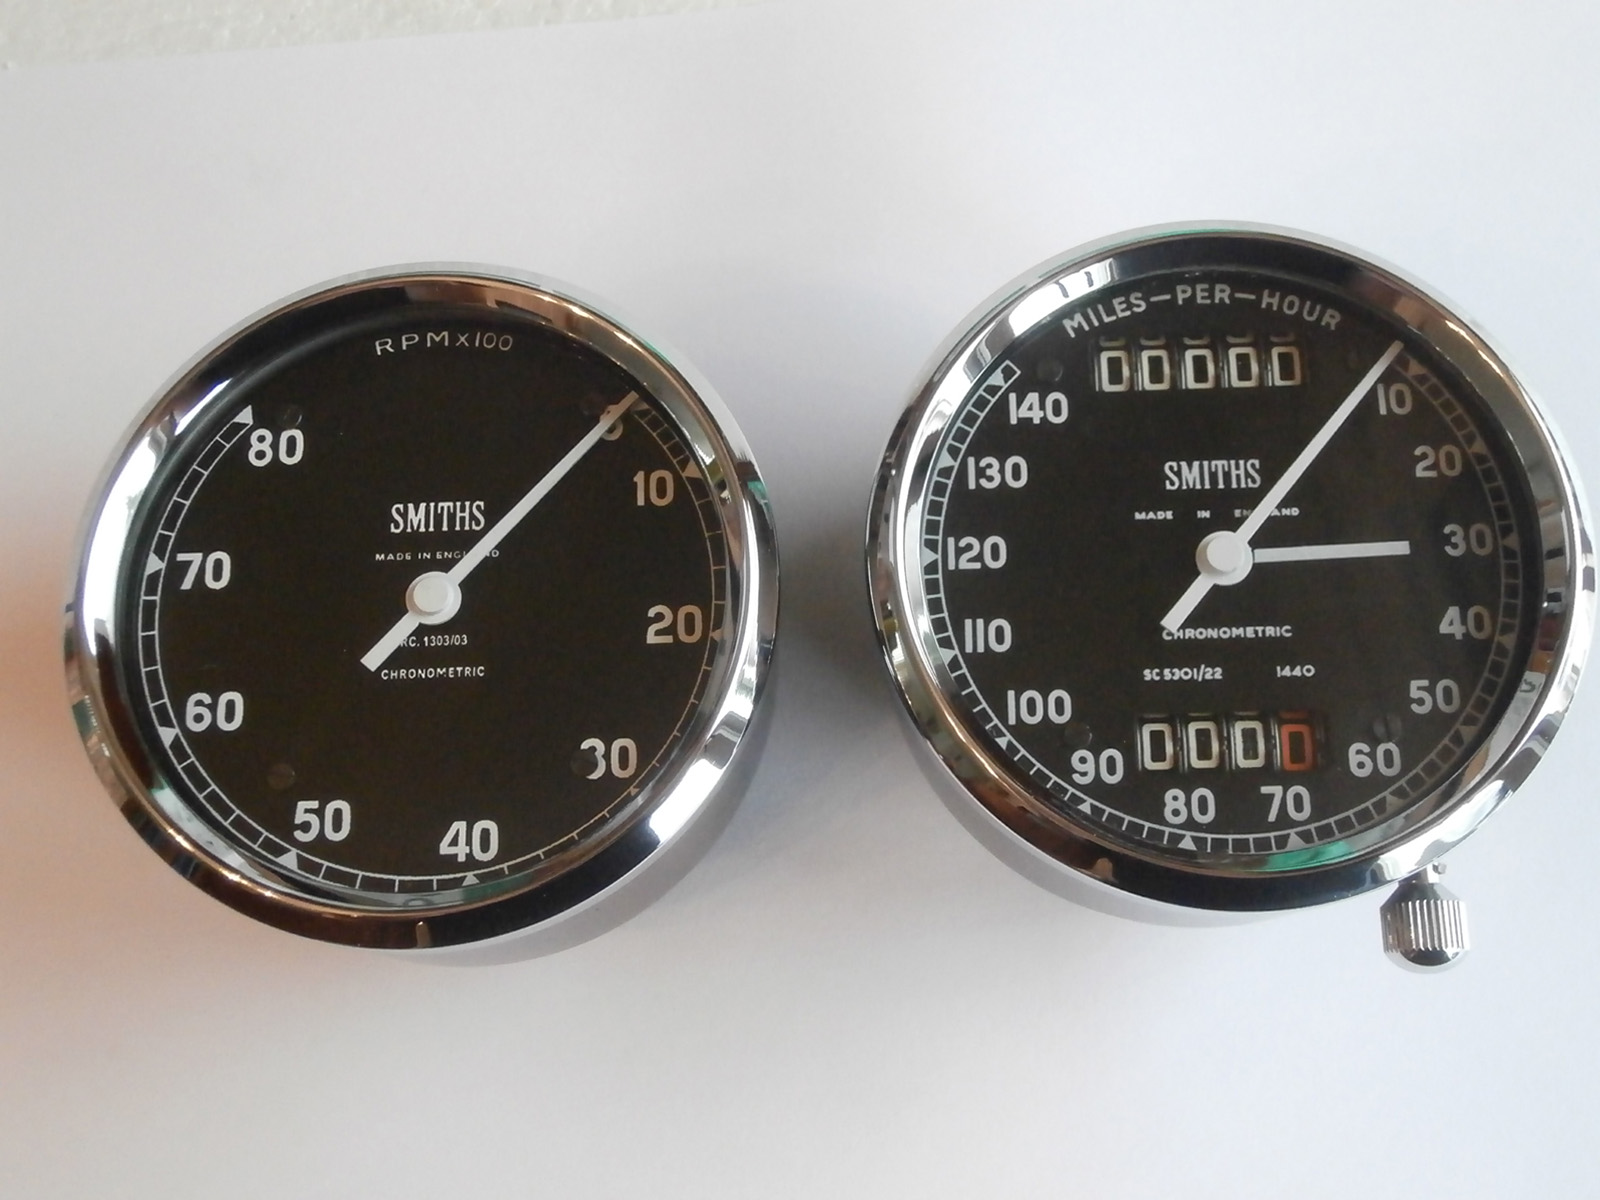 SMITHS Speedometer Repair, Smiths Tachometer Repair, motorcycles